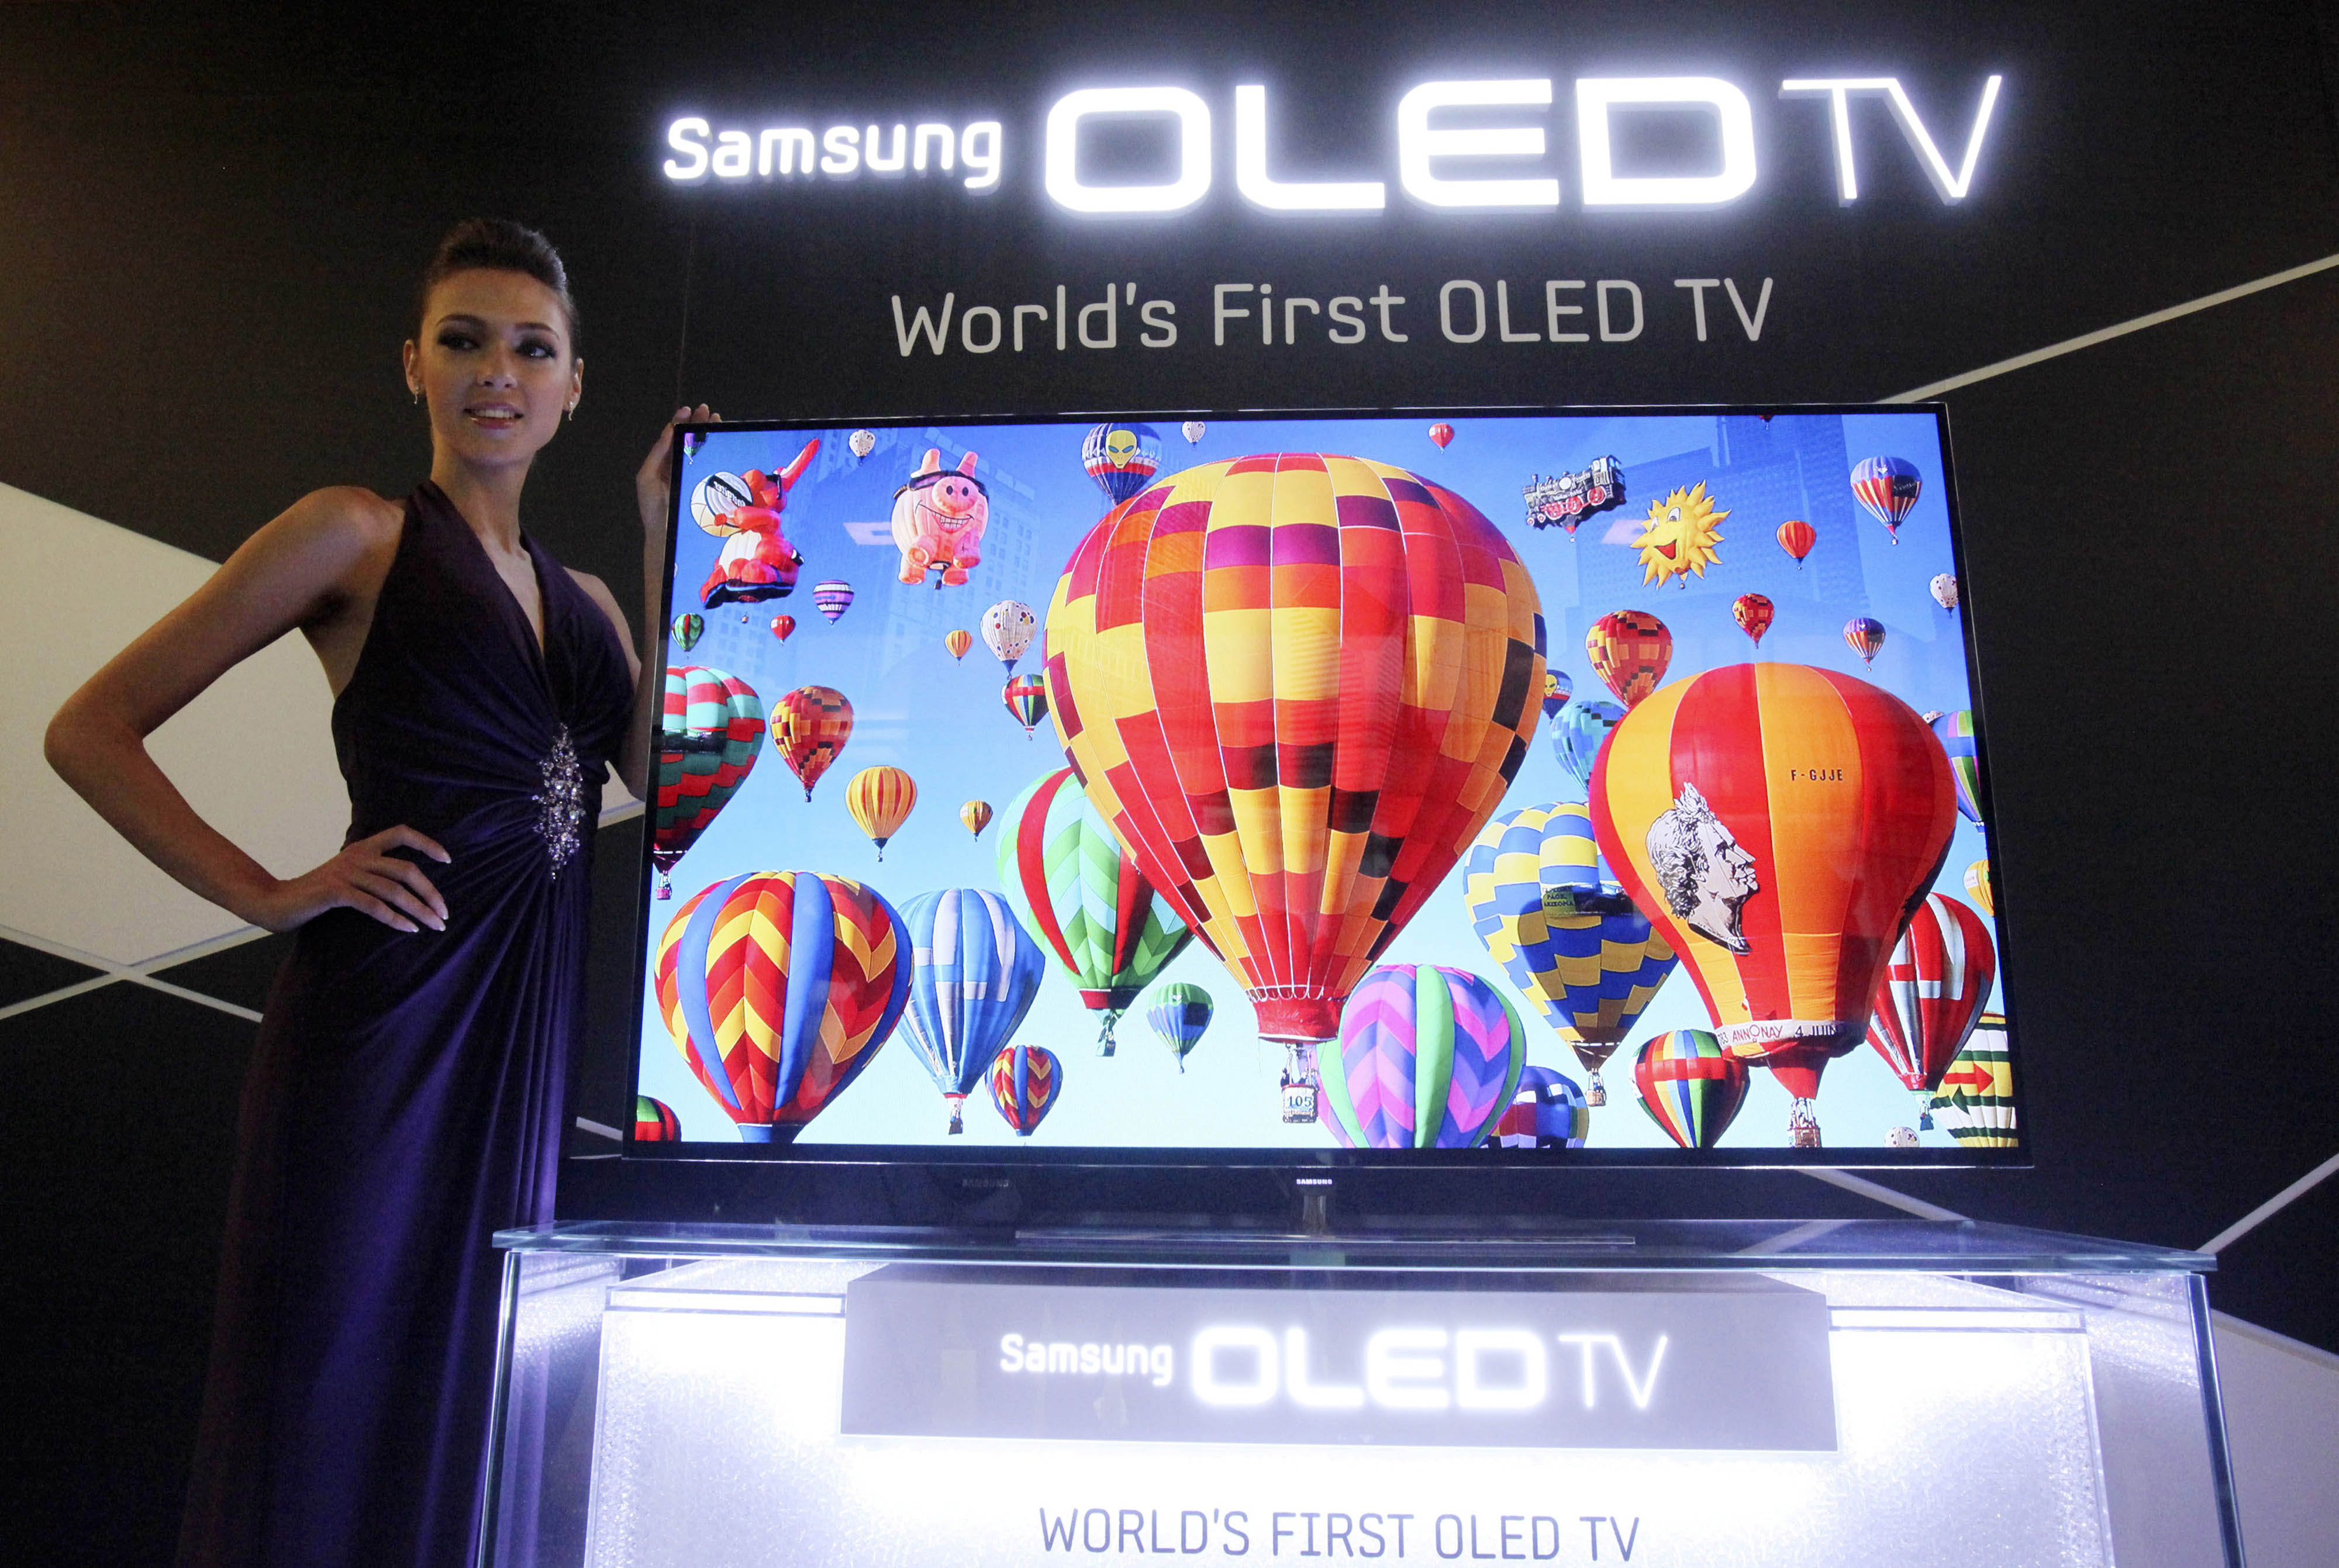 sony panasonic to collaborate on oled tvs the japan times. Black Bedroom Furniture Sets. Home Design Ideas